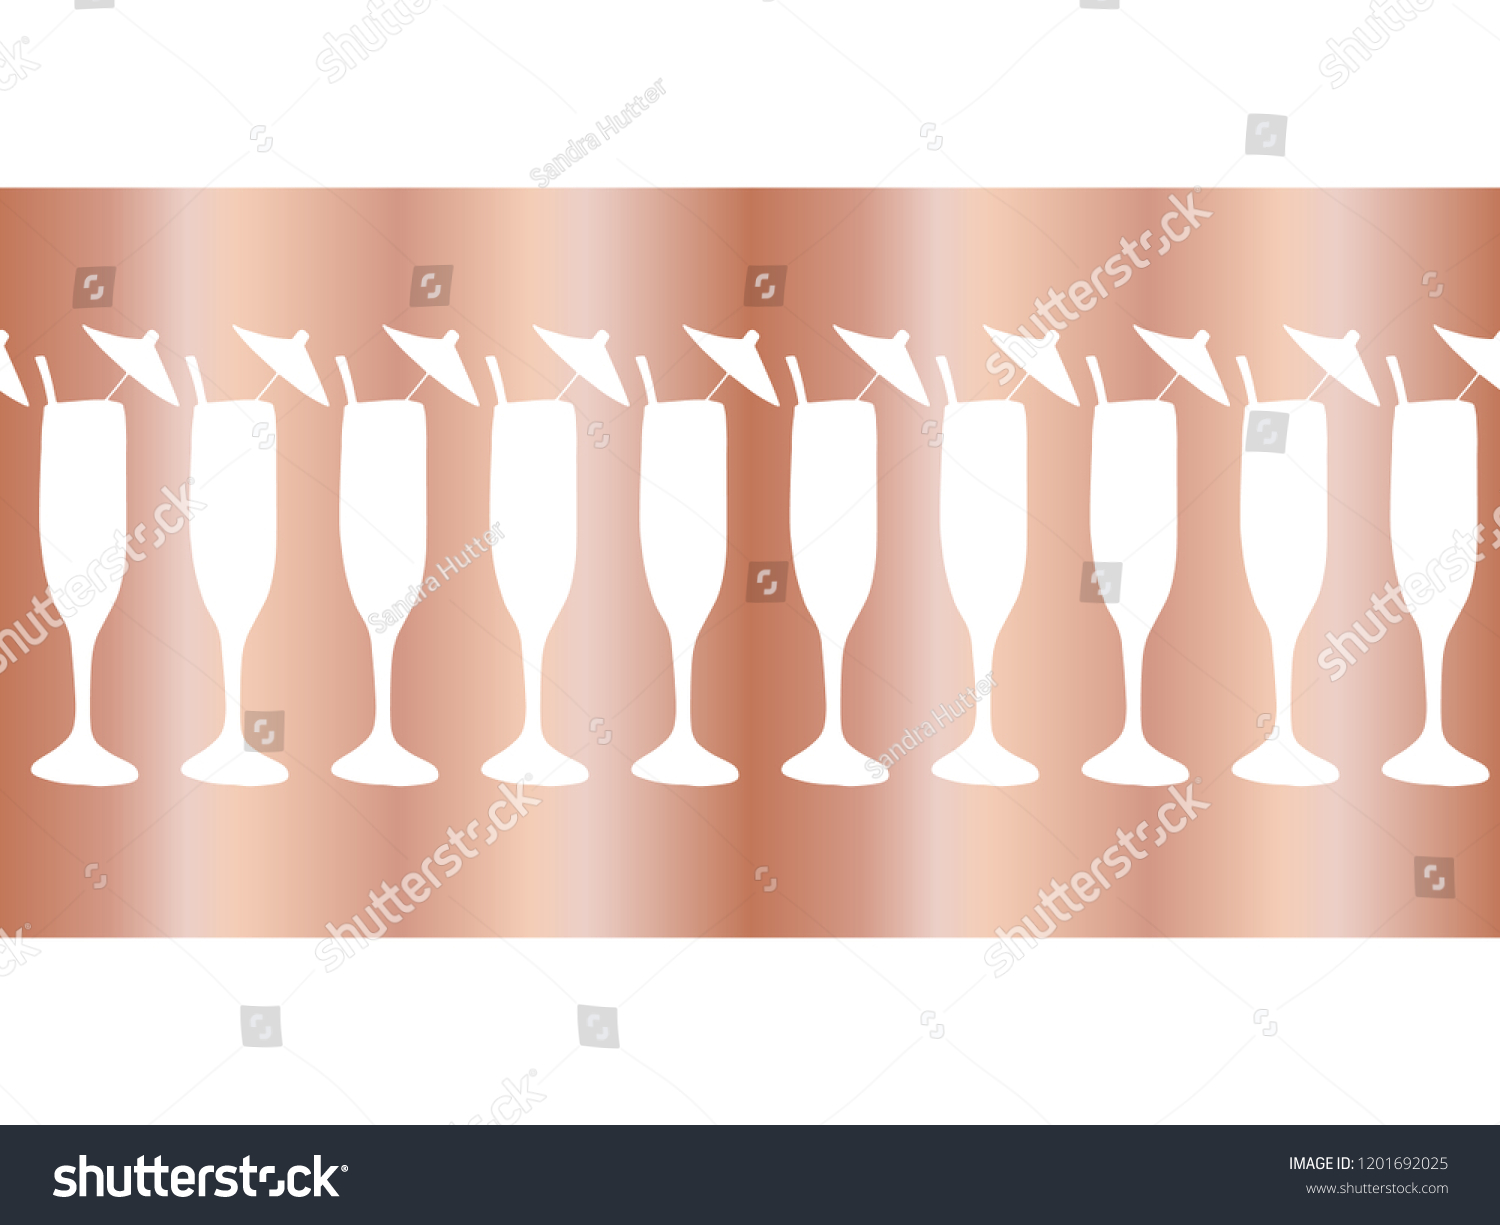 copper foil champagne flutes seamless vector pattern border cocktail glasses on rose gold background